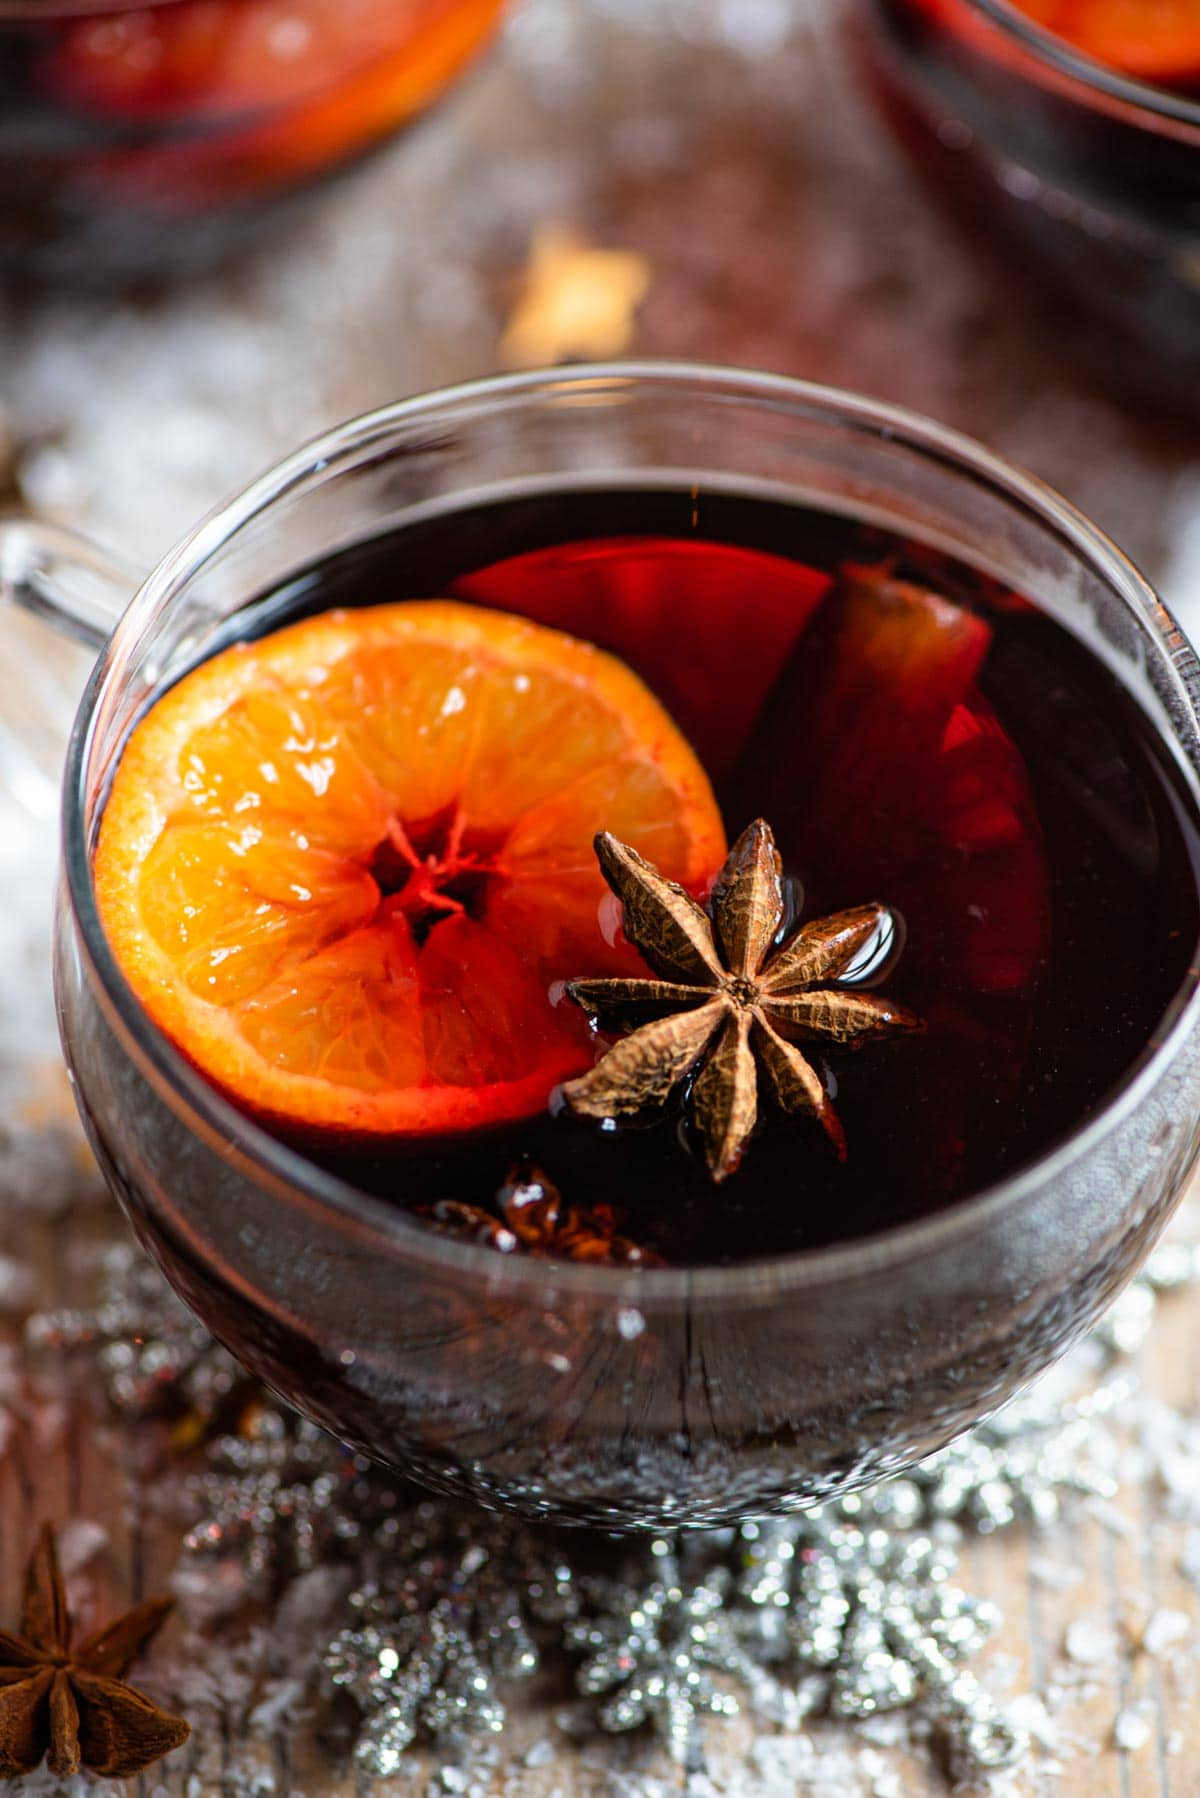 A close up of a mug of mulled wine with oranges, star anise and cinnamon